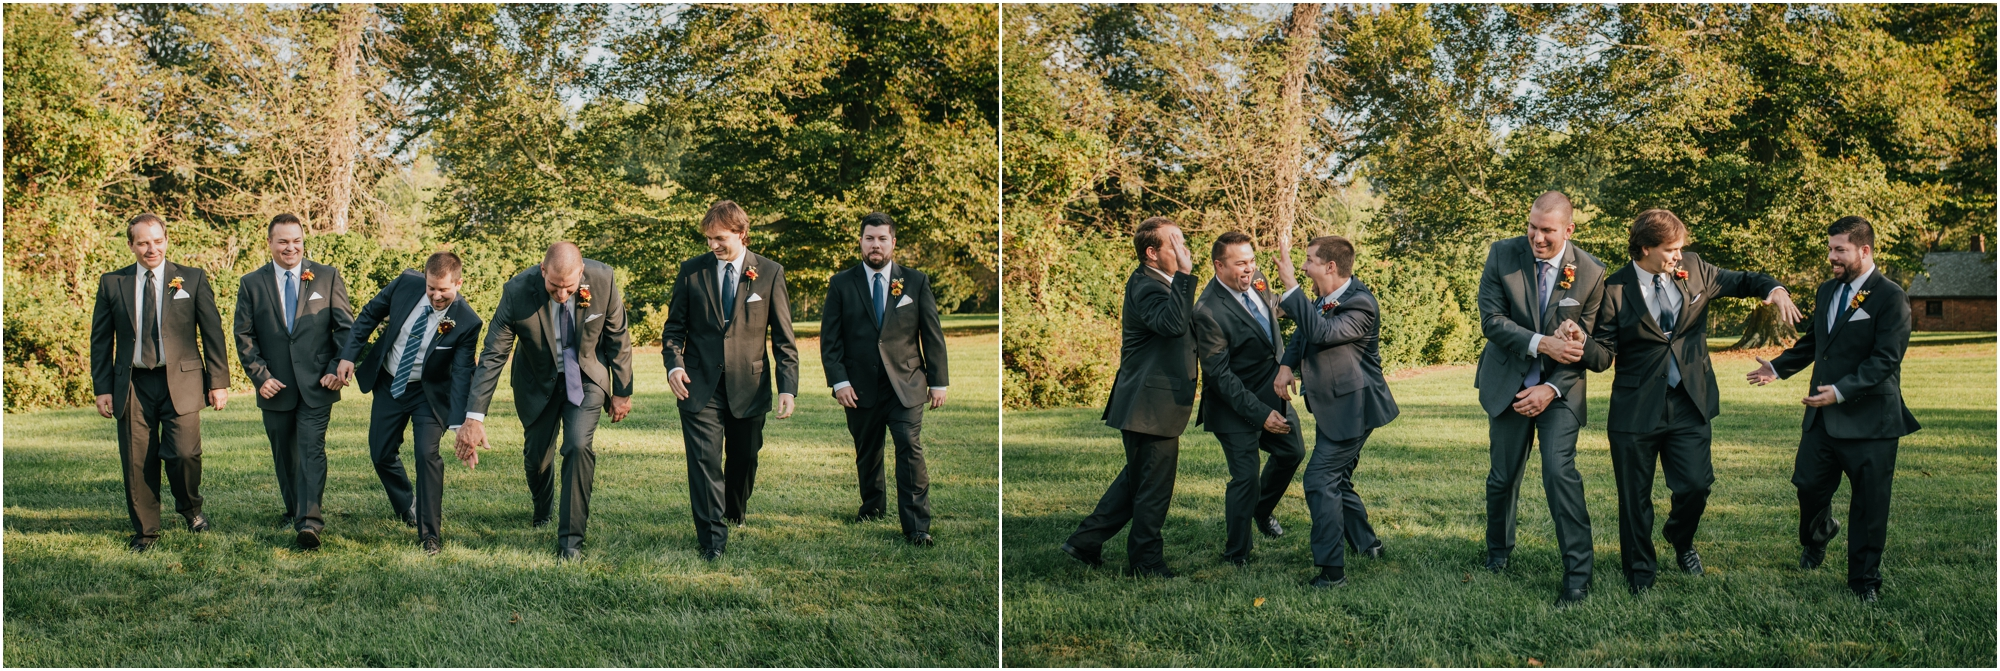 Fall-gem-stone-earthy-succulent-mount-airy-mansion-wedding-tennessee-elopement-photographer_0092.jpg